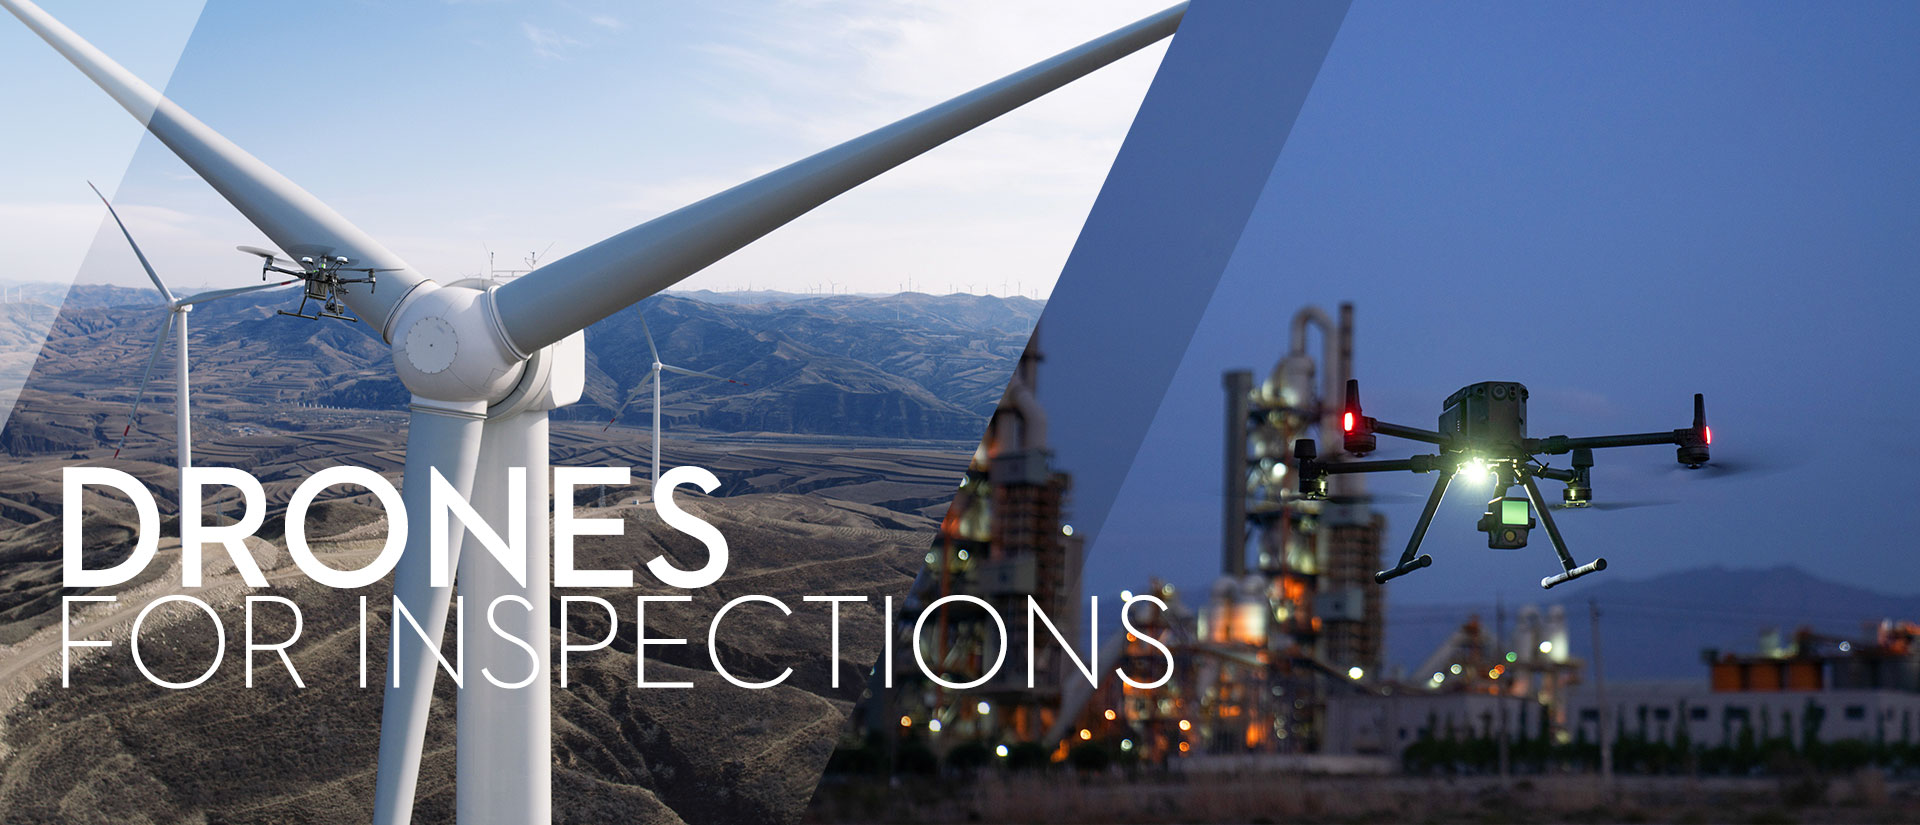 Blog-Drone-Inspection